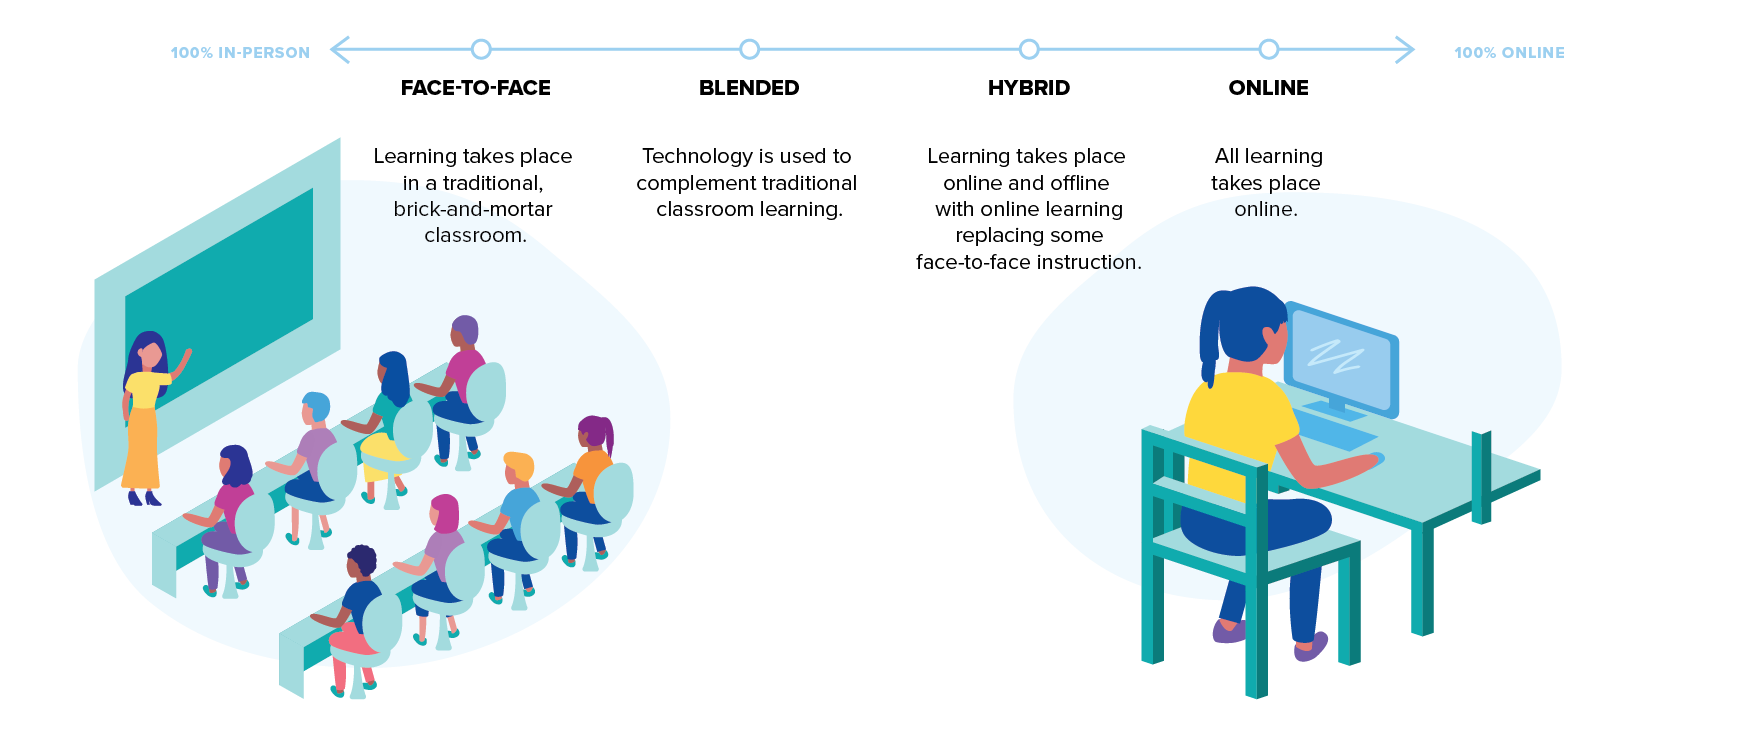 Hybrid and blended learning fall in the middle of the learning spectrum between fully in-person instruction and fully online instruction. From left to right: face-to-face, blended learning, hybrid learning, online learning.